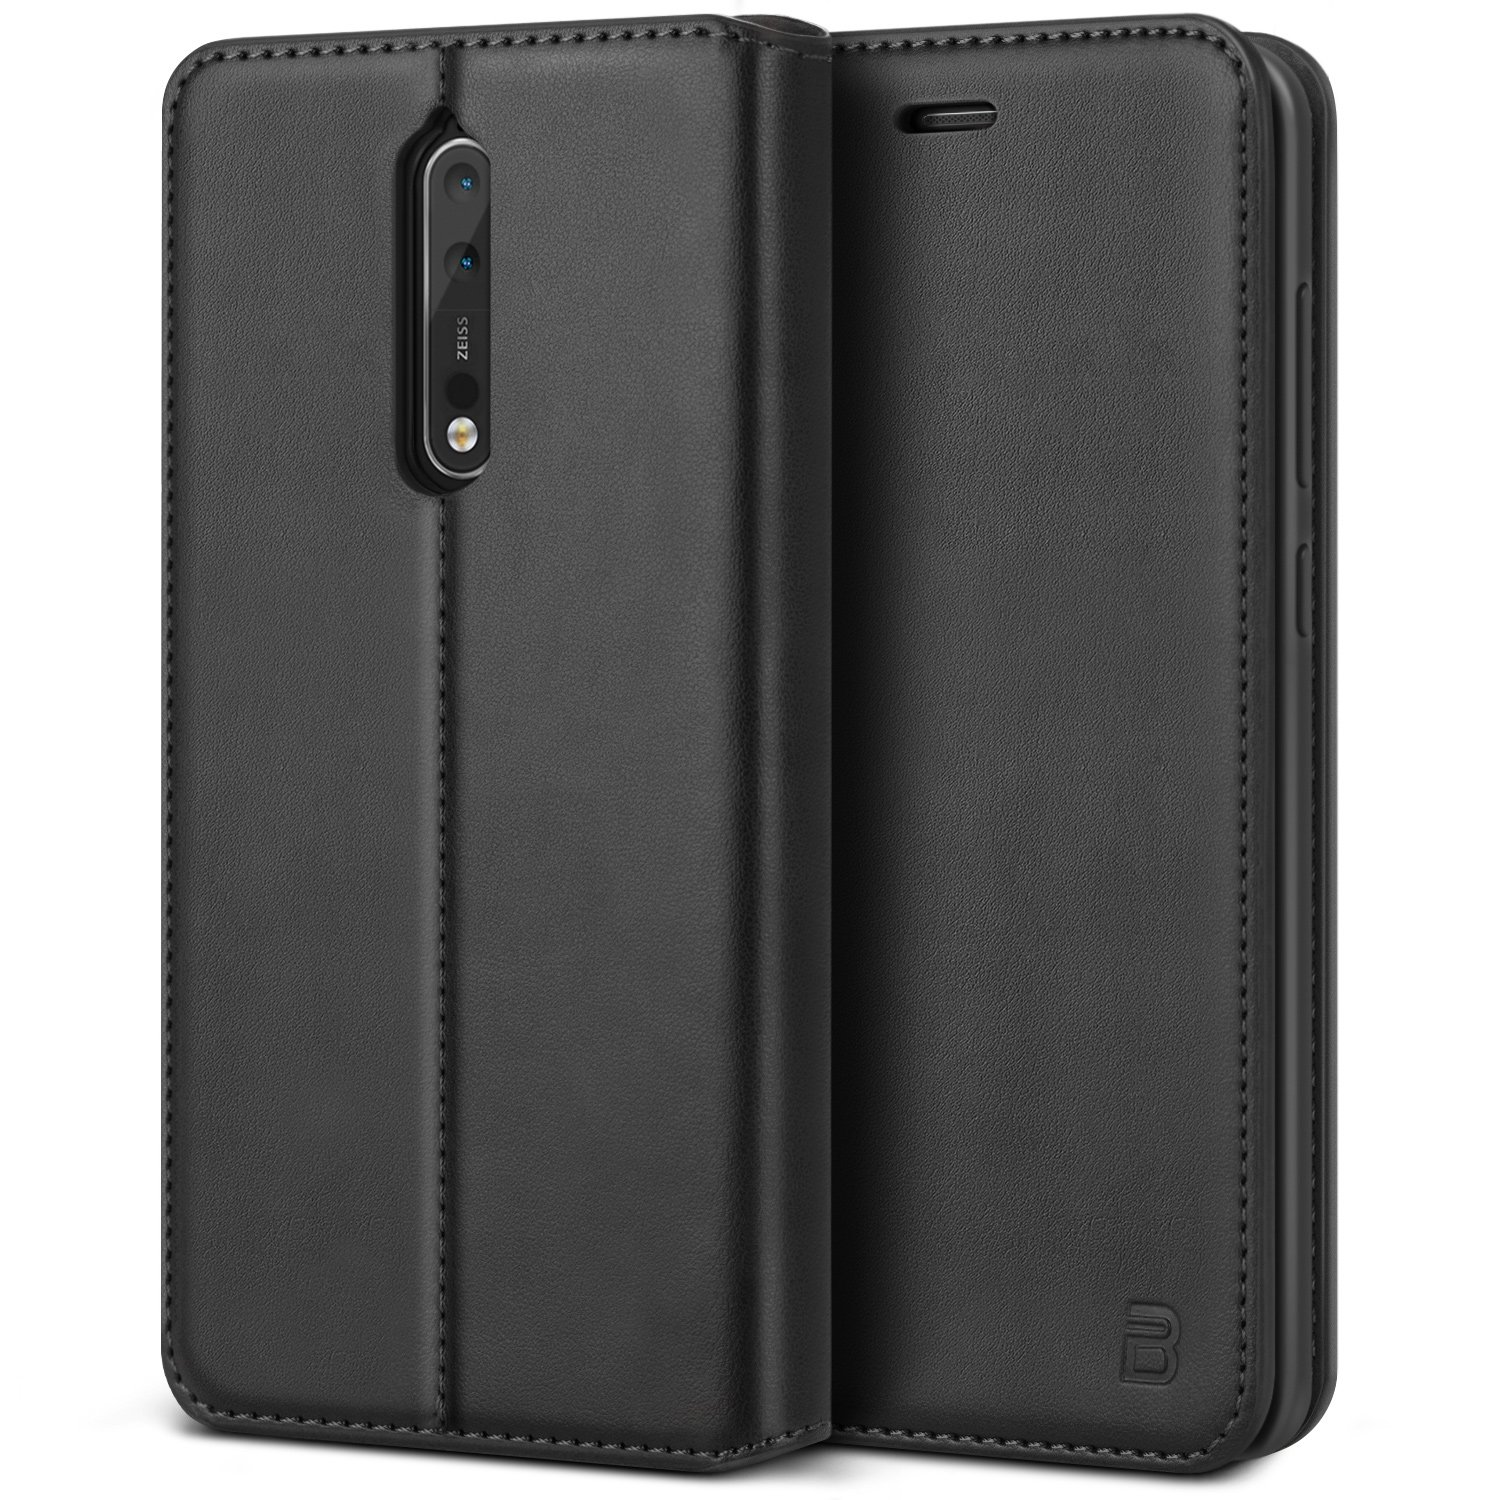 on sale 7d37a aad28 BEZ Case for Nokia 8 Case, Protective PU Leather Wallet Flip Phone Cover  Compatible with Nokia 8 with A Card Holder, Kick Stand, Magnetic Closure,  ...